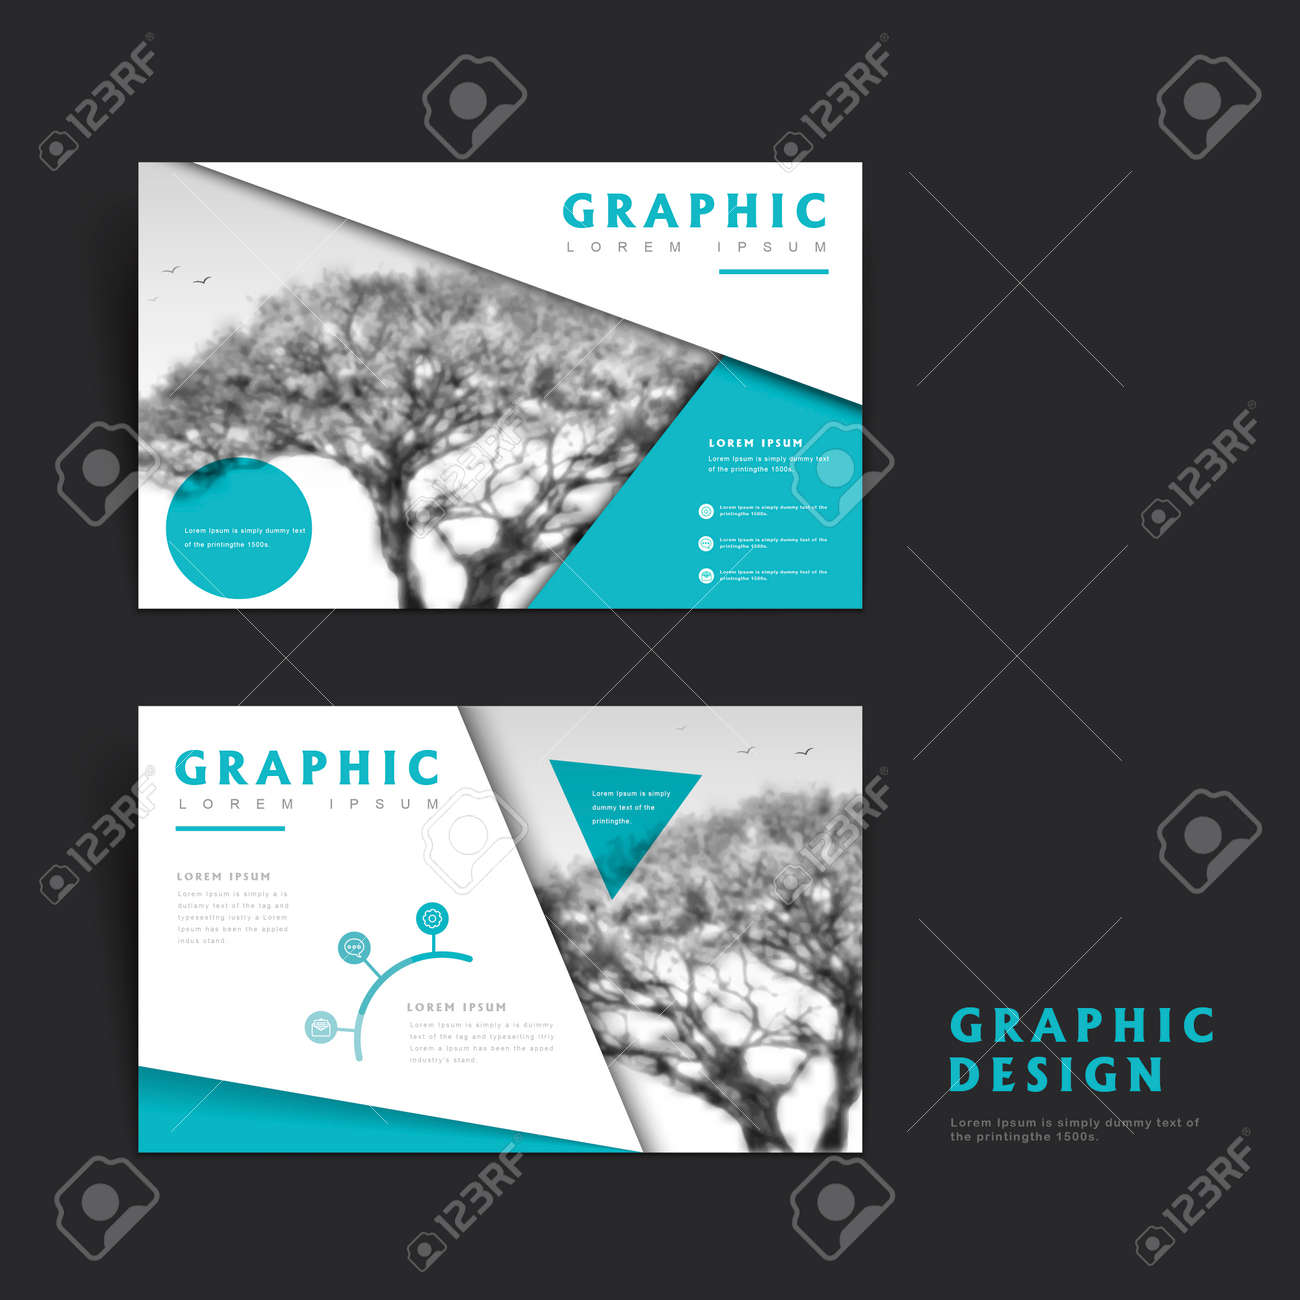 Elegant Brochure Template Design With Acacia Background Royalty Free